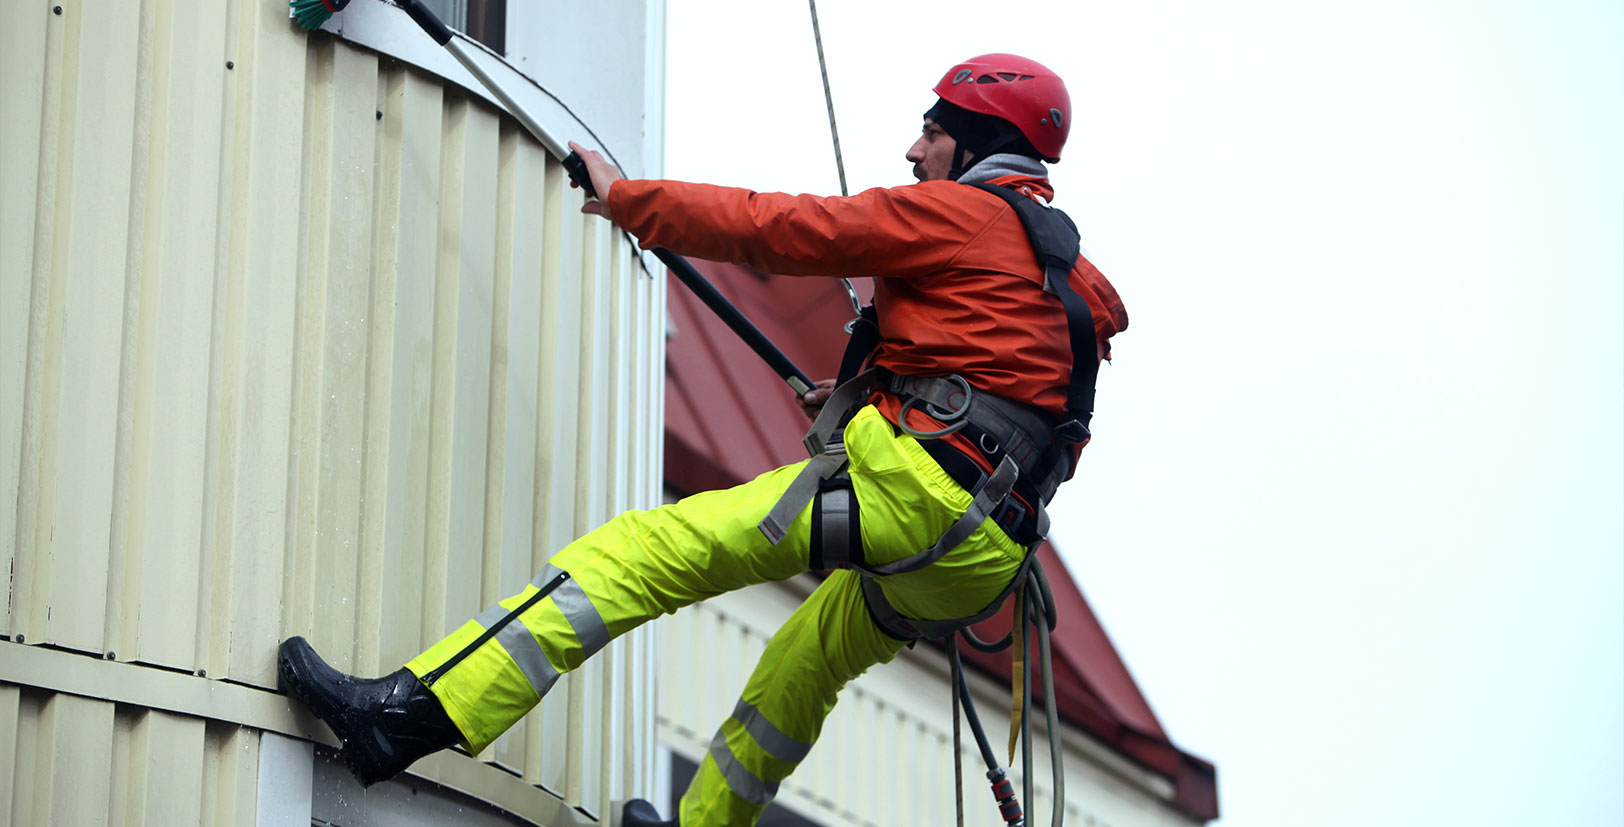 UltraRent Vatten - Ropeaccess